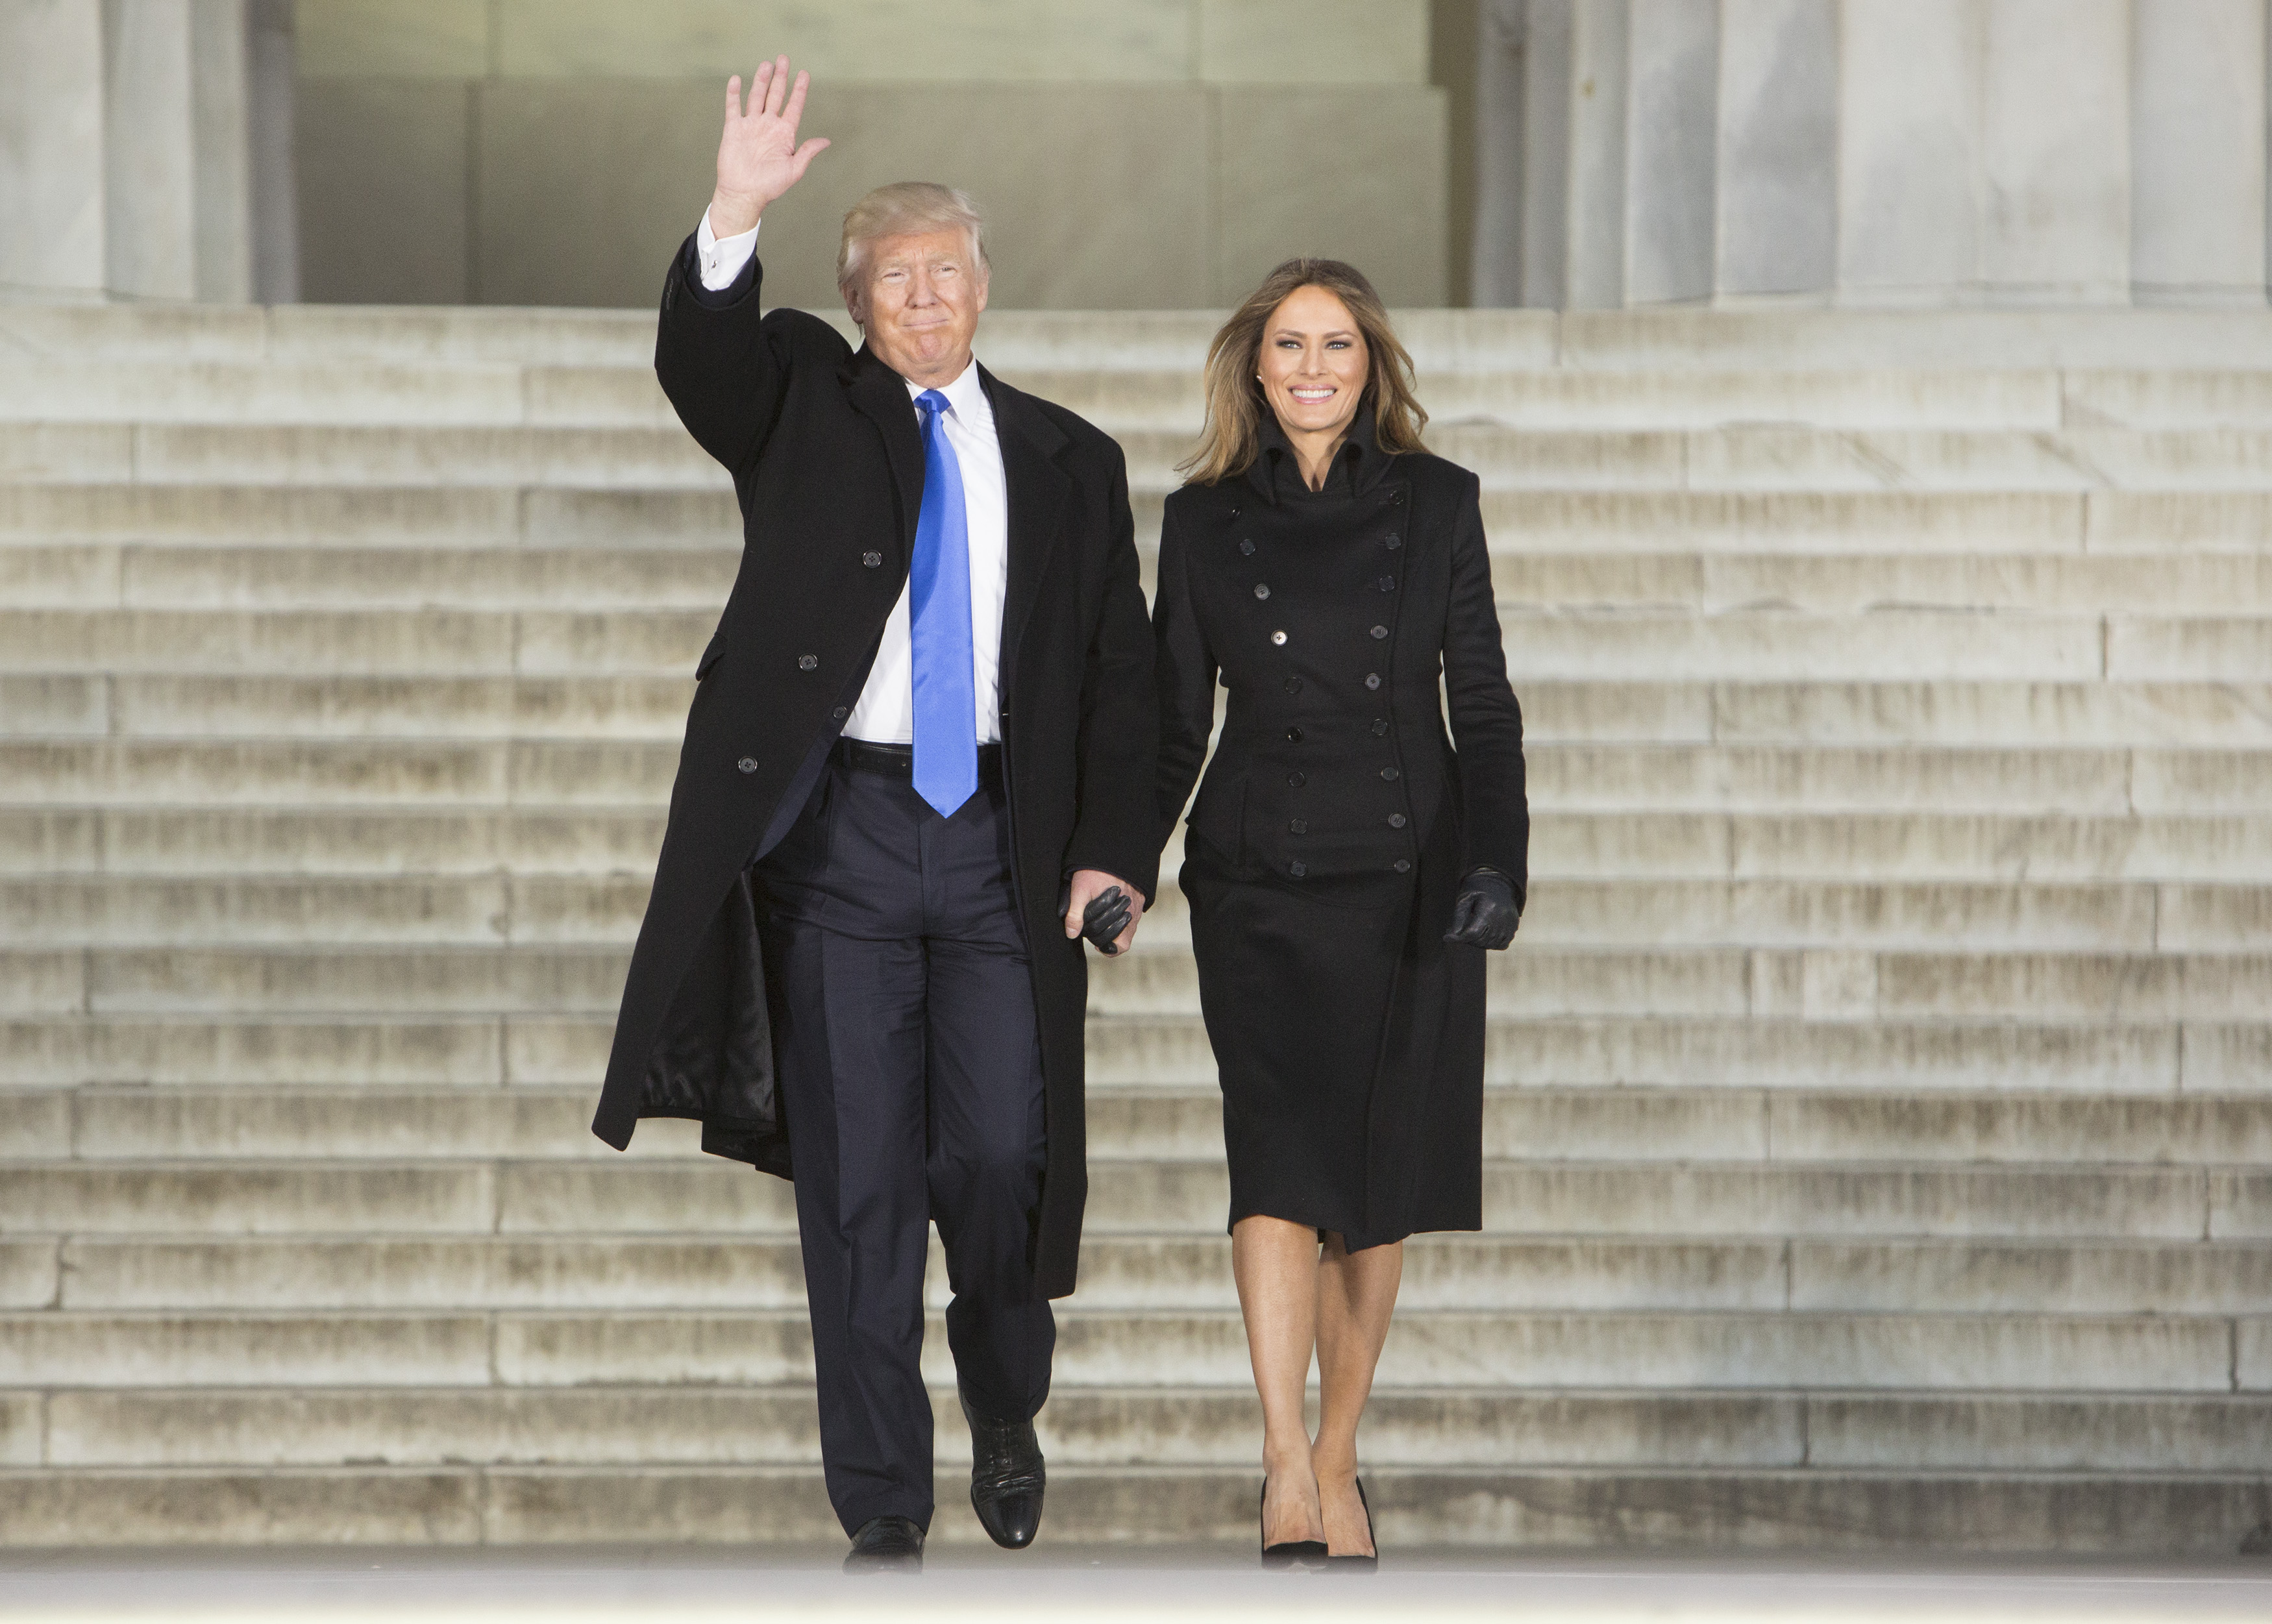 President-elect Donald Trump and his wife Melania Trump arrive at the  Make America Great Again  Welcome Celebration concert at the Lincoln Memorial in Washington, D.C., on Jan. 19, 2017.